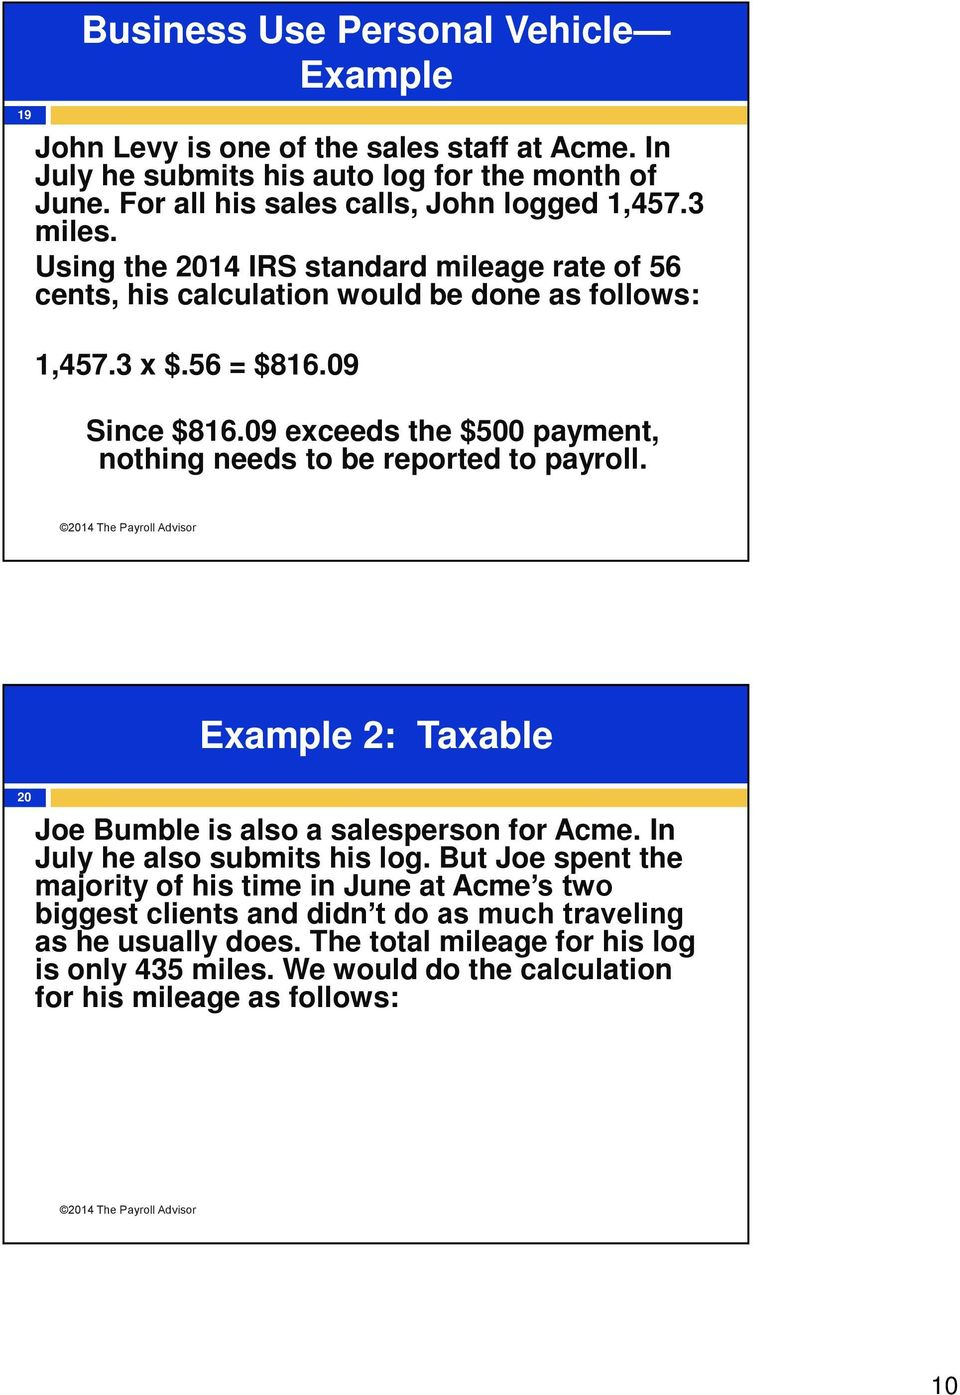 09 Since $816.09 exceeds the $500 payment, nothing needs to be reported to payroll. Example 2: Taxable 20 Joe Bumble is also a salesperson for Acme. In July he also submits his log.